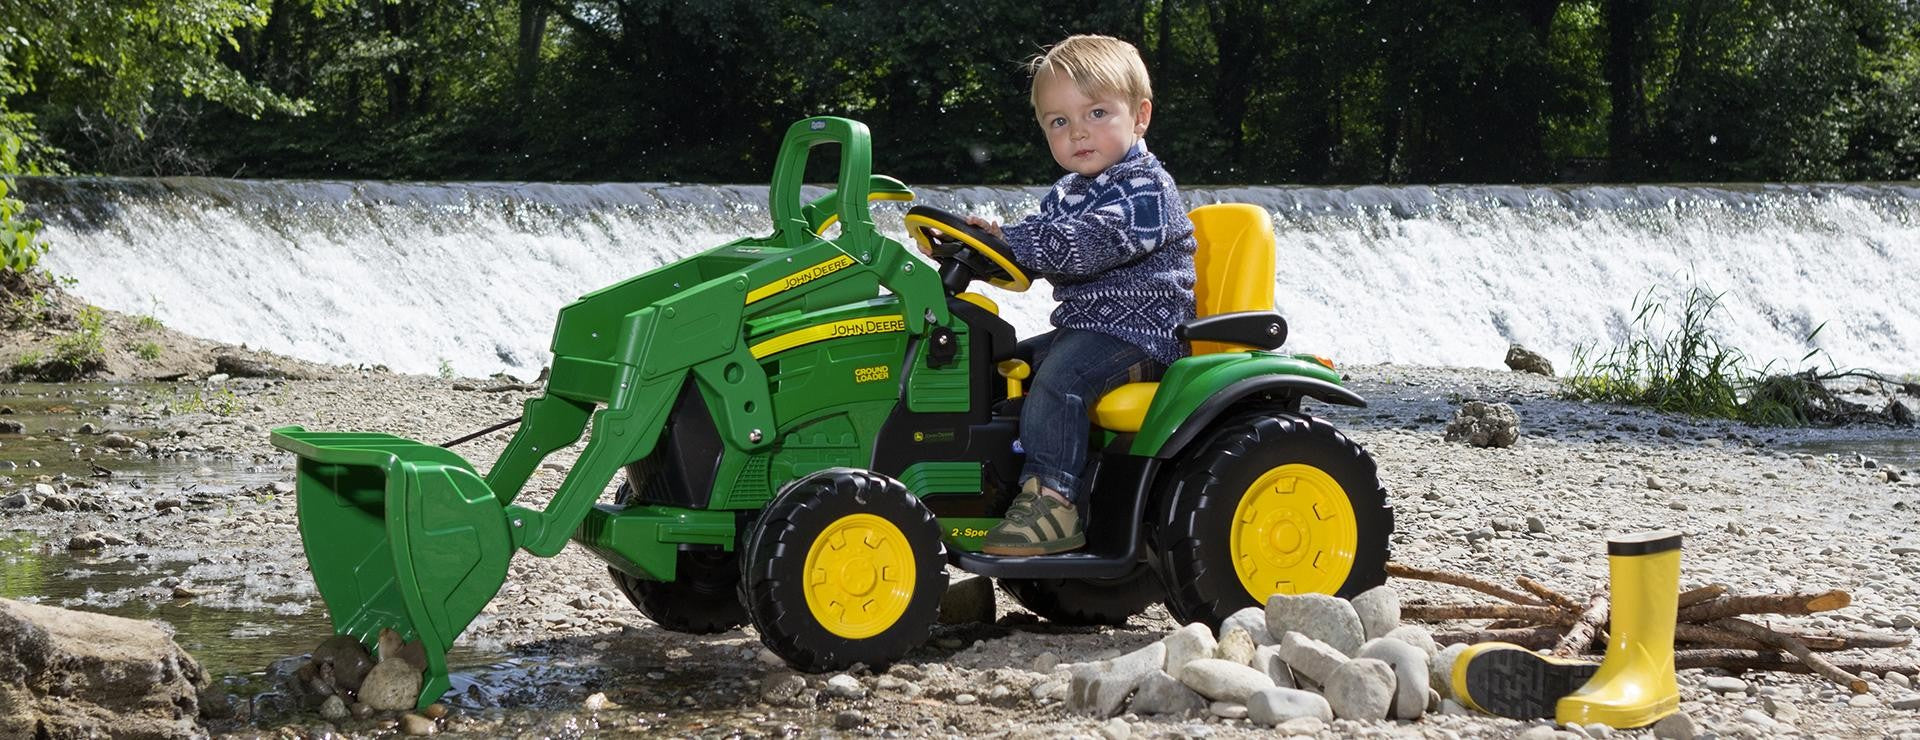 John Deere 12v Ground Loader